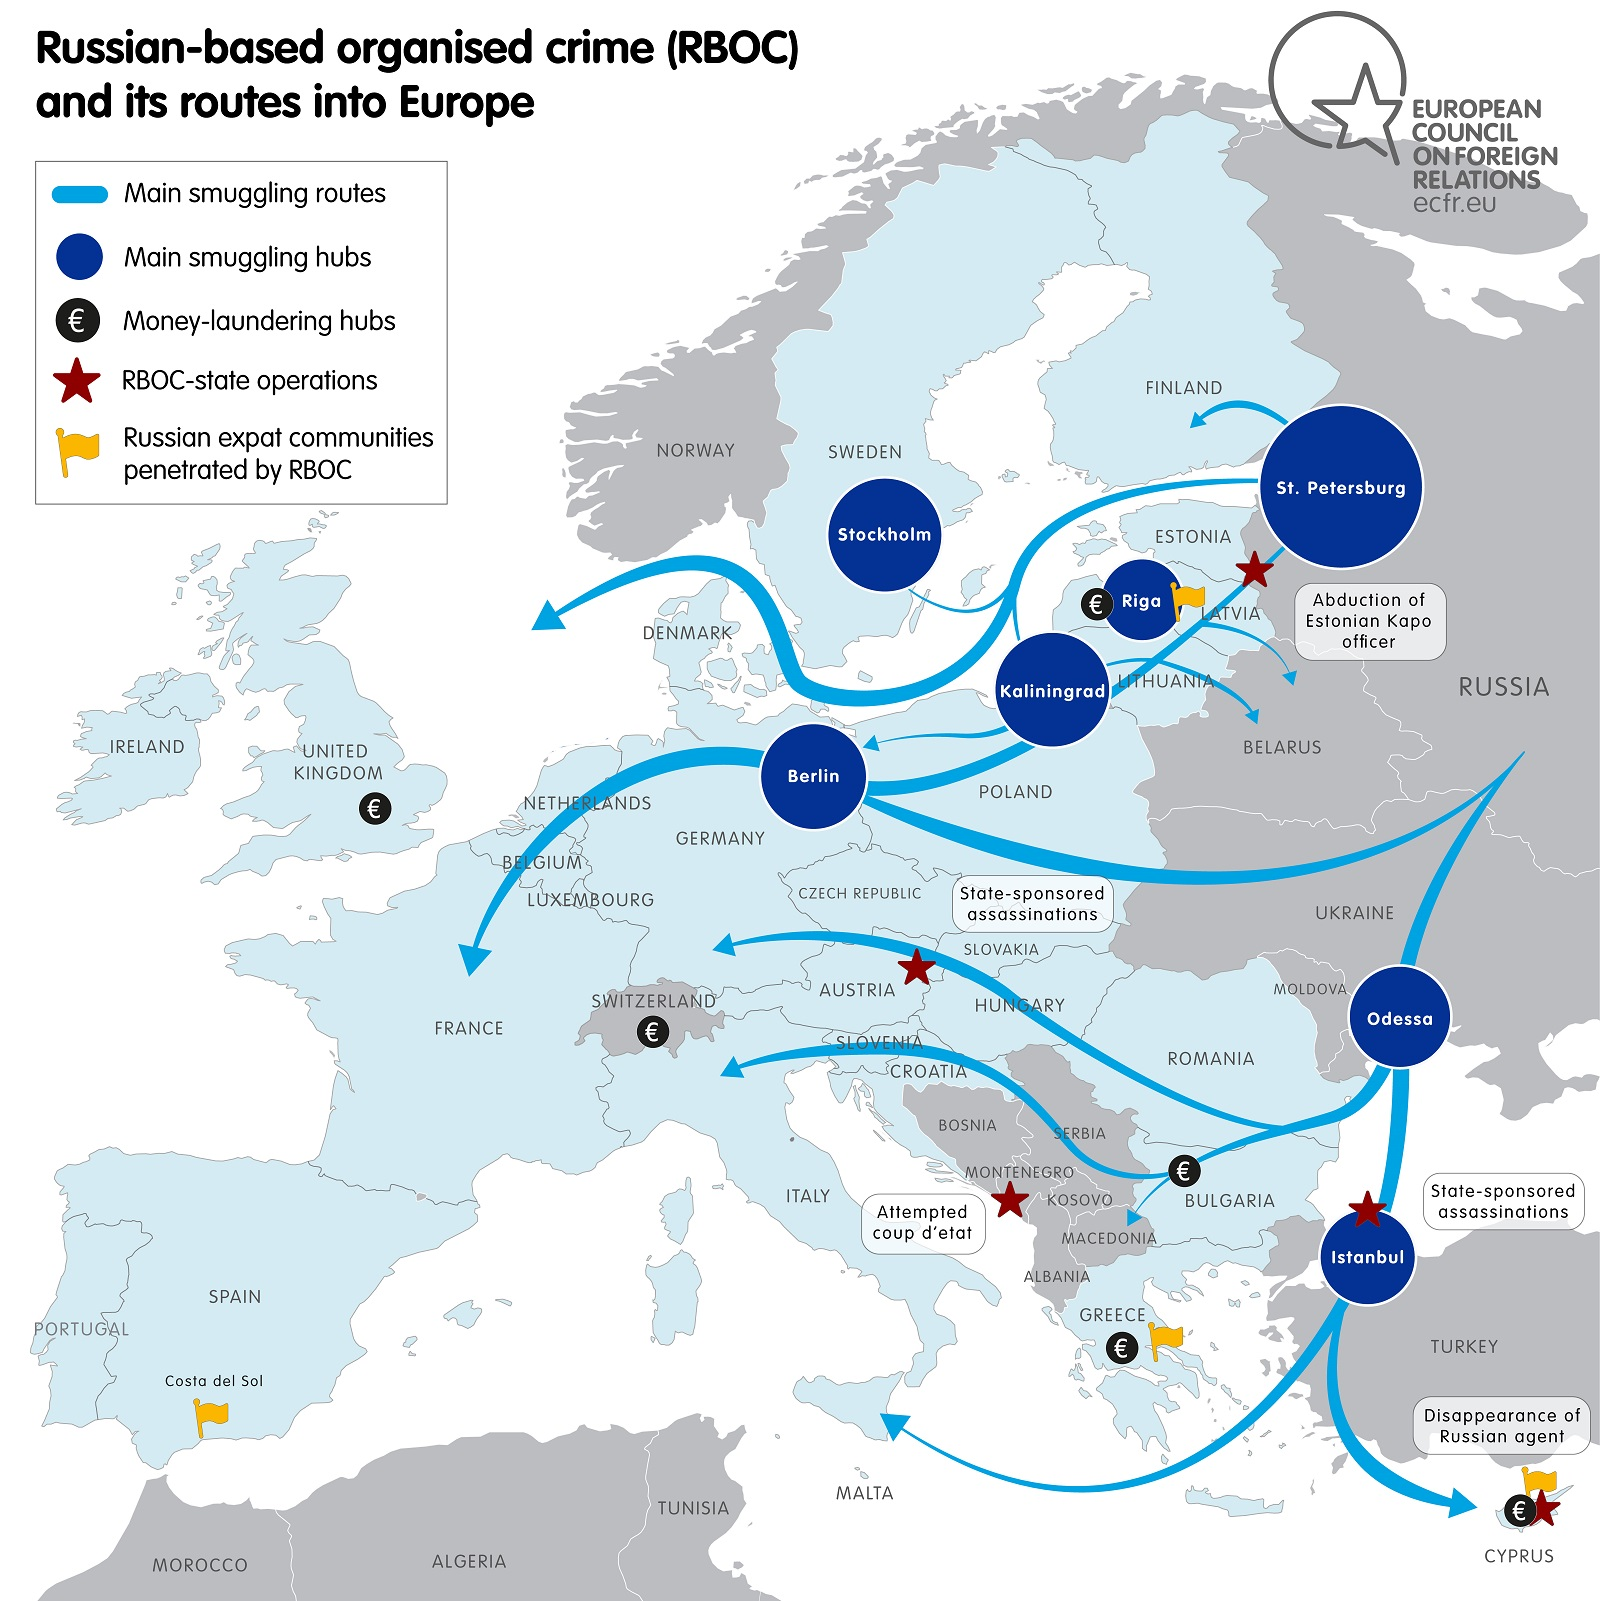 http://www.ecfr.eu/page/-/RUSSIAN-CRIME-IN-EUROPE---INFOGRAPHIC-(GAD).jpg?v=1492512862